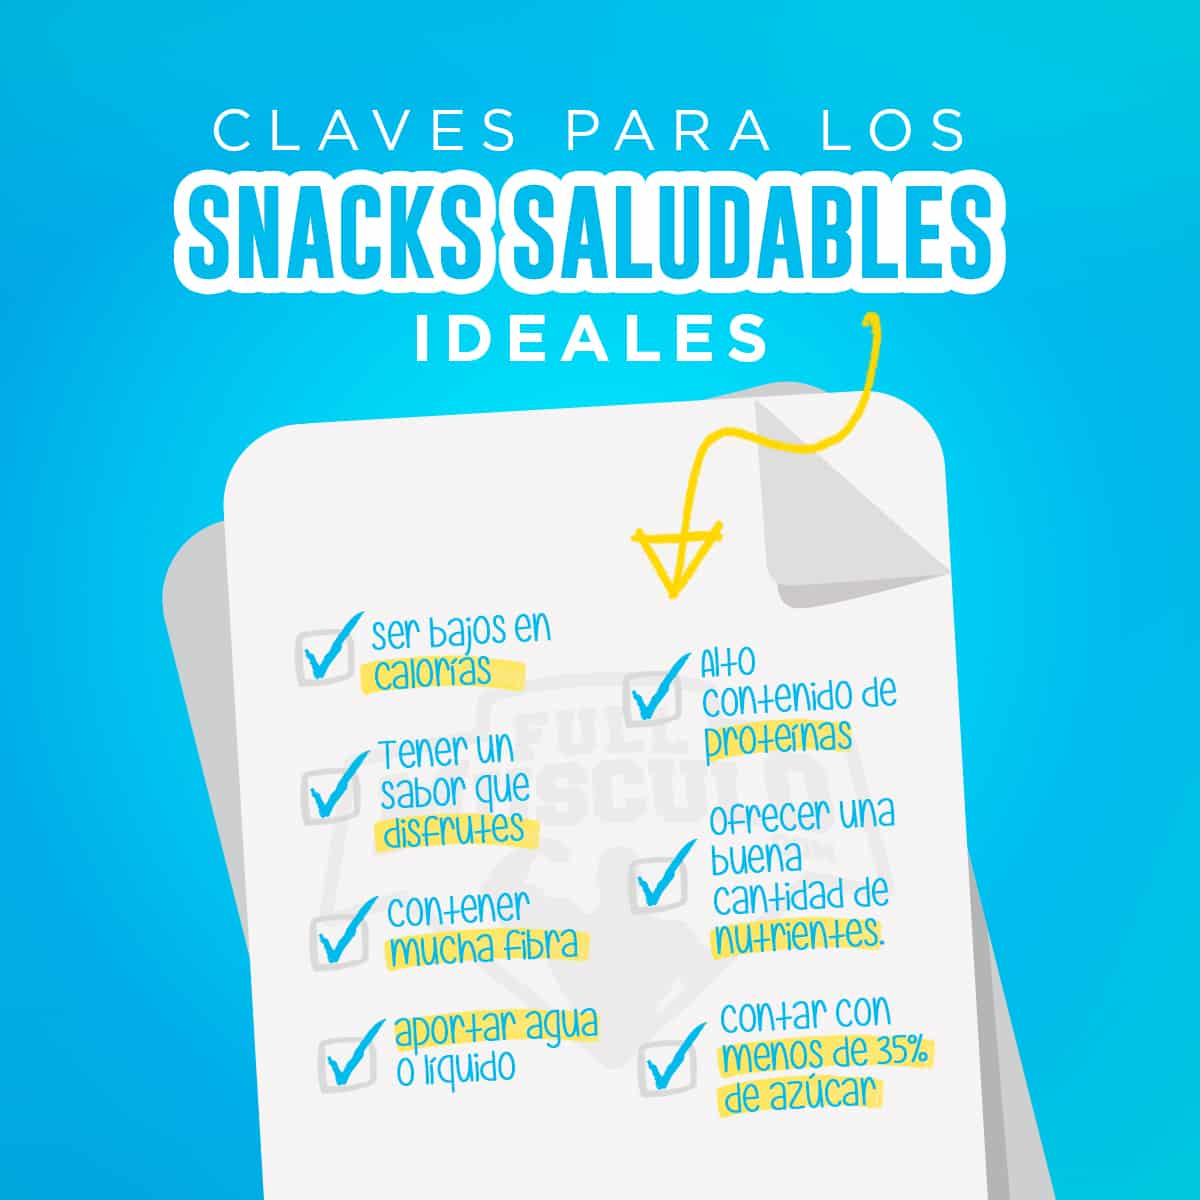 Claves para unos snacks saludables